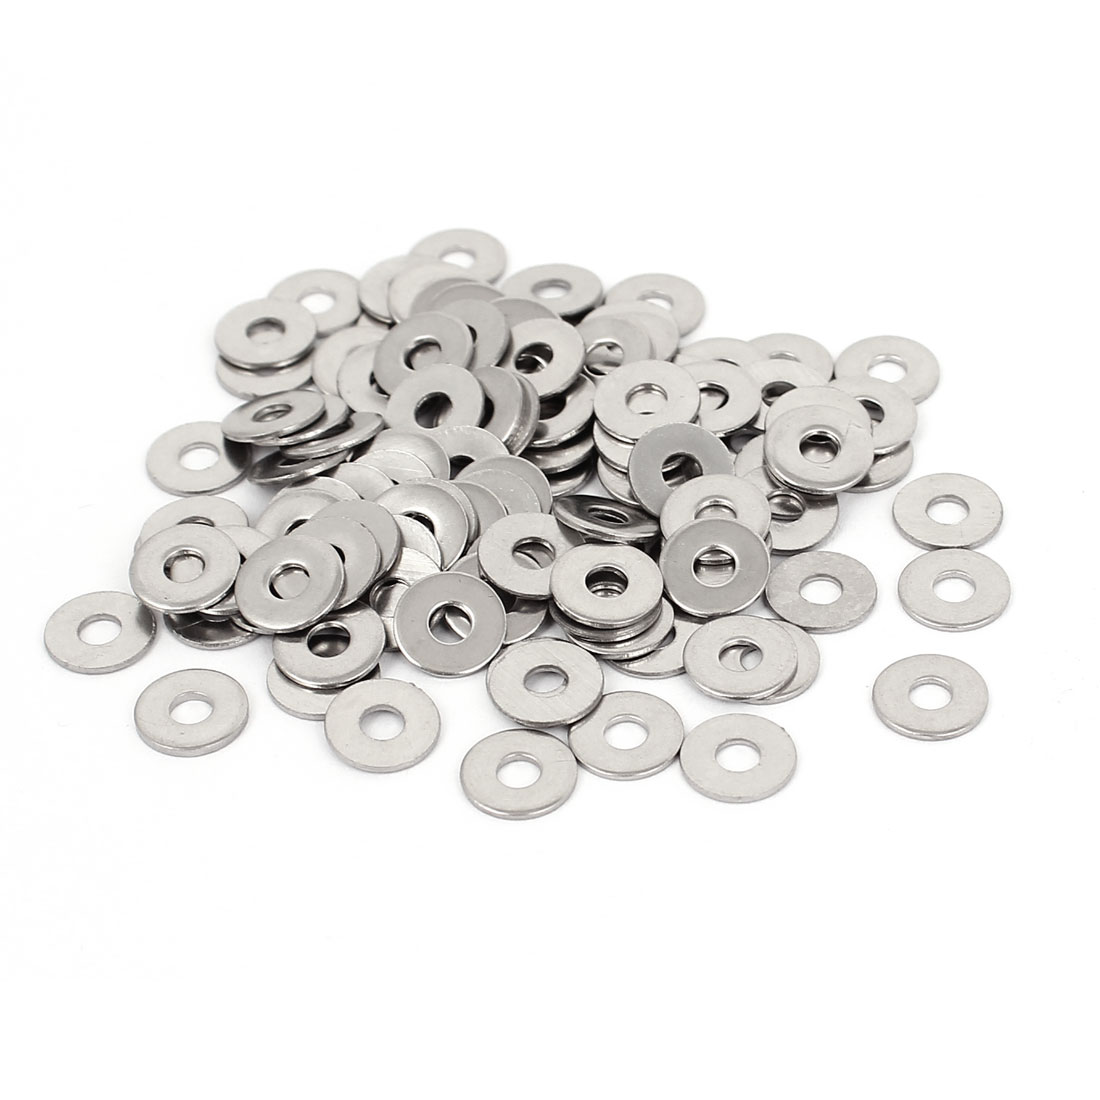 100Pcs M3x9mmx0.8mm Stainless Steel Metric Round Flat Washer for Bolt Screw